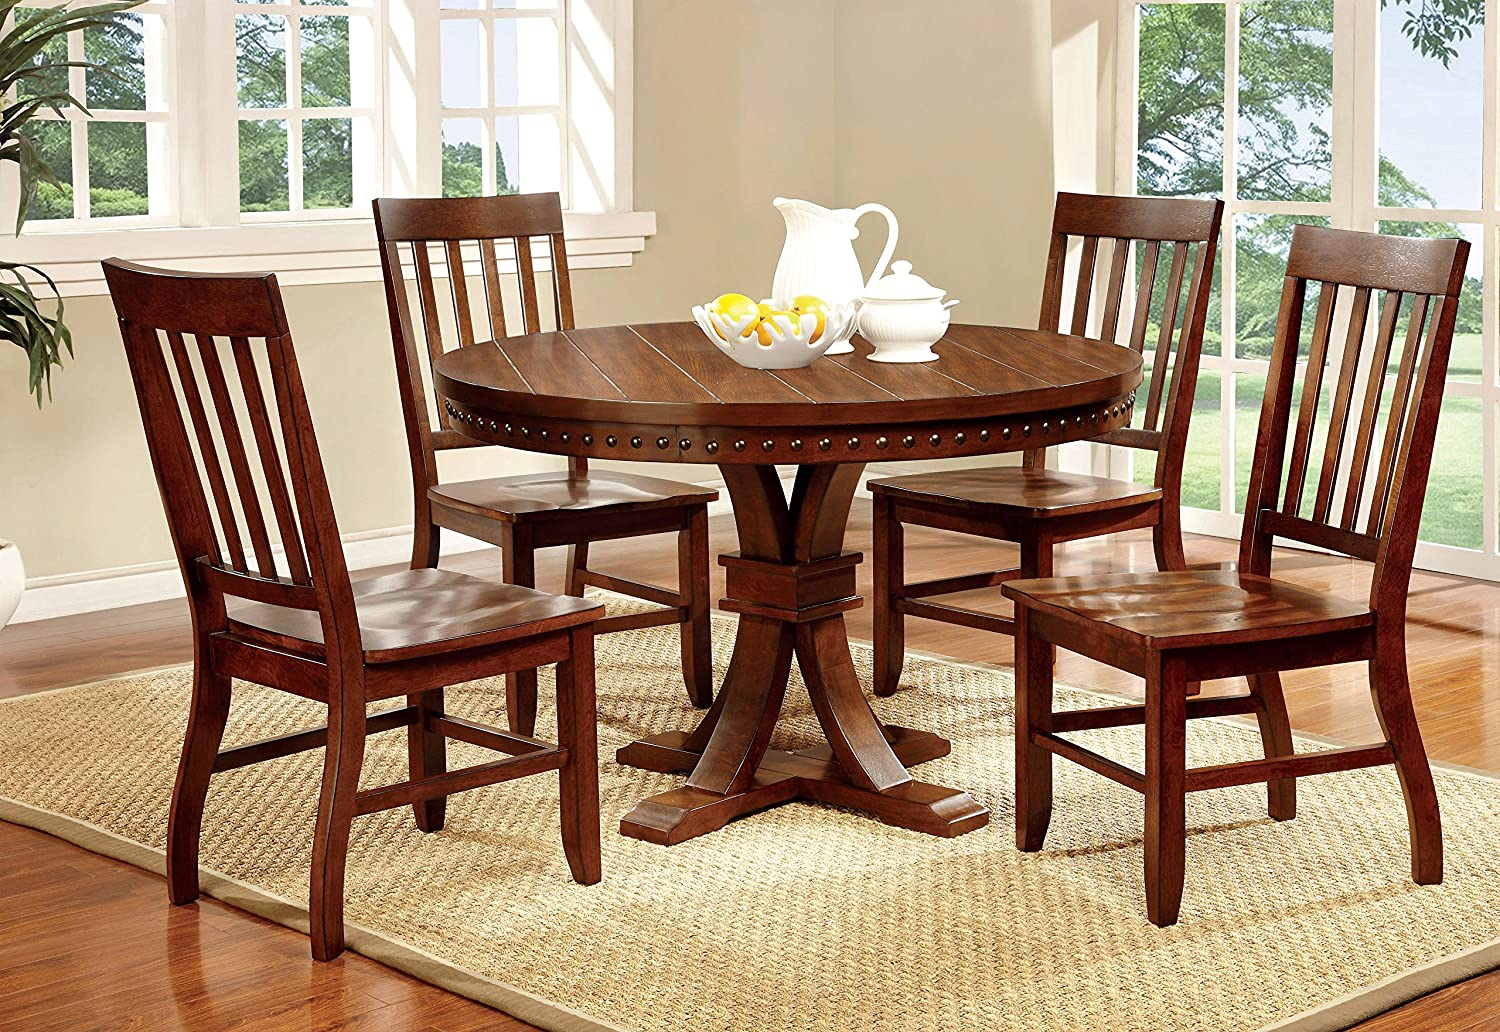 Amazon.com - Furniture of America Castile 5-Piece Transitional Round Dining Table Set Dark Oak - Table \u0026 Chair Sets : oak dining table set - pezcame.com